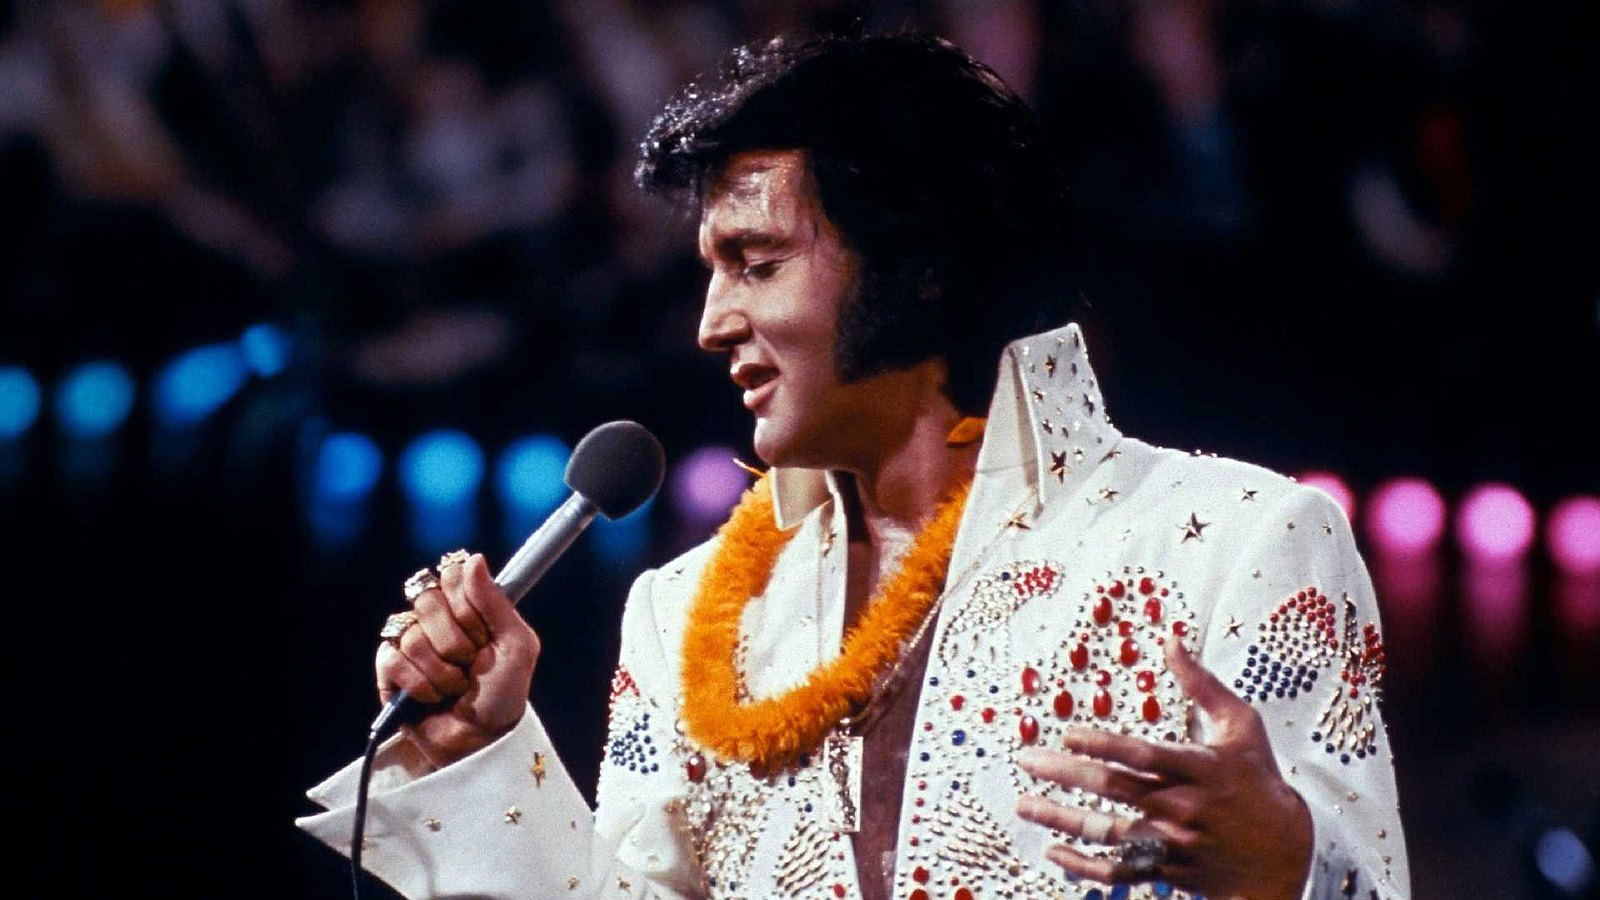 Presley in Aloha from Hawaii, broadcast live via satellite on January 14, 1973. The singer himself came up with his famous outfit's eagle motif, as